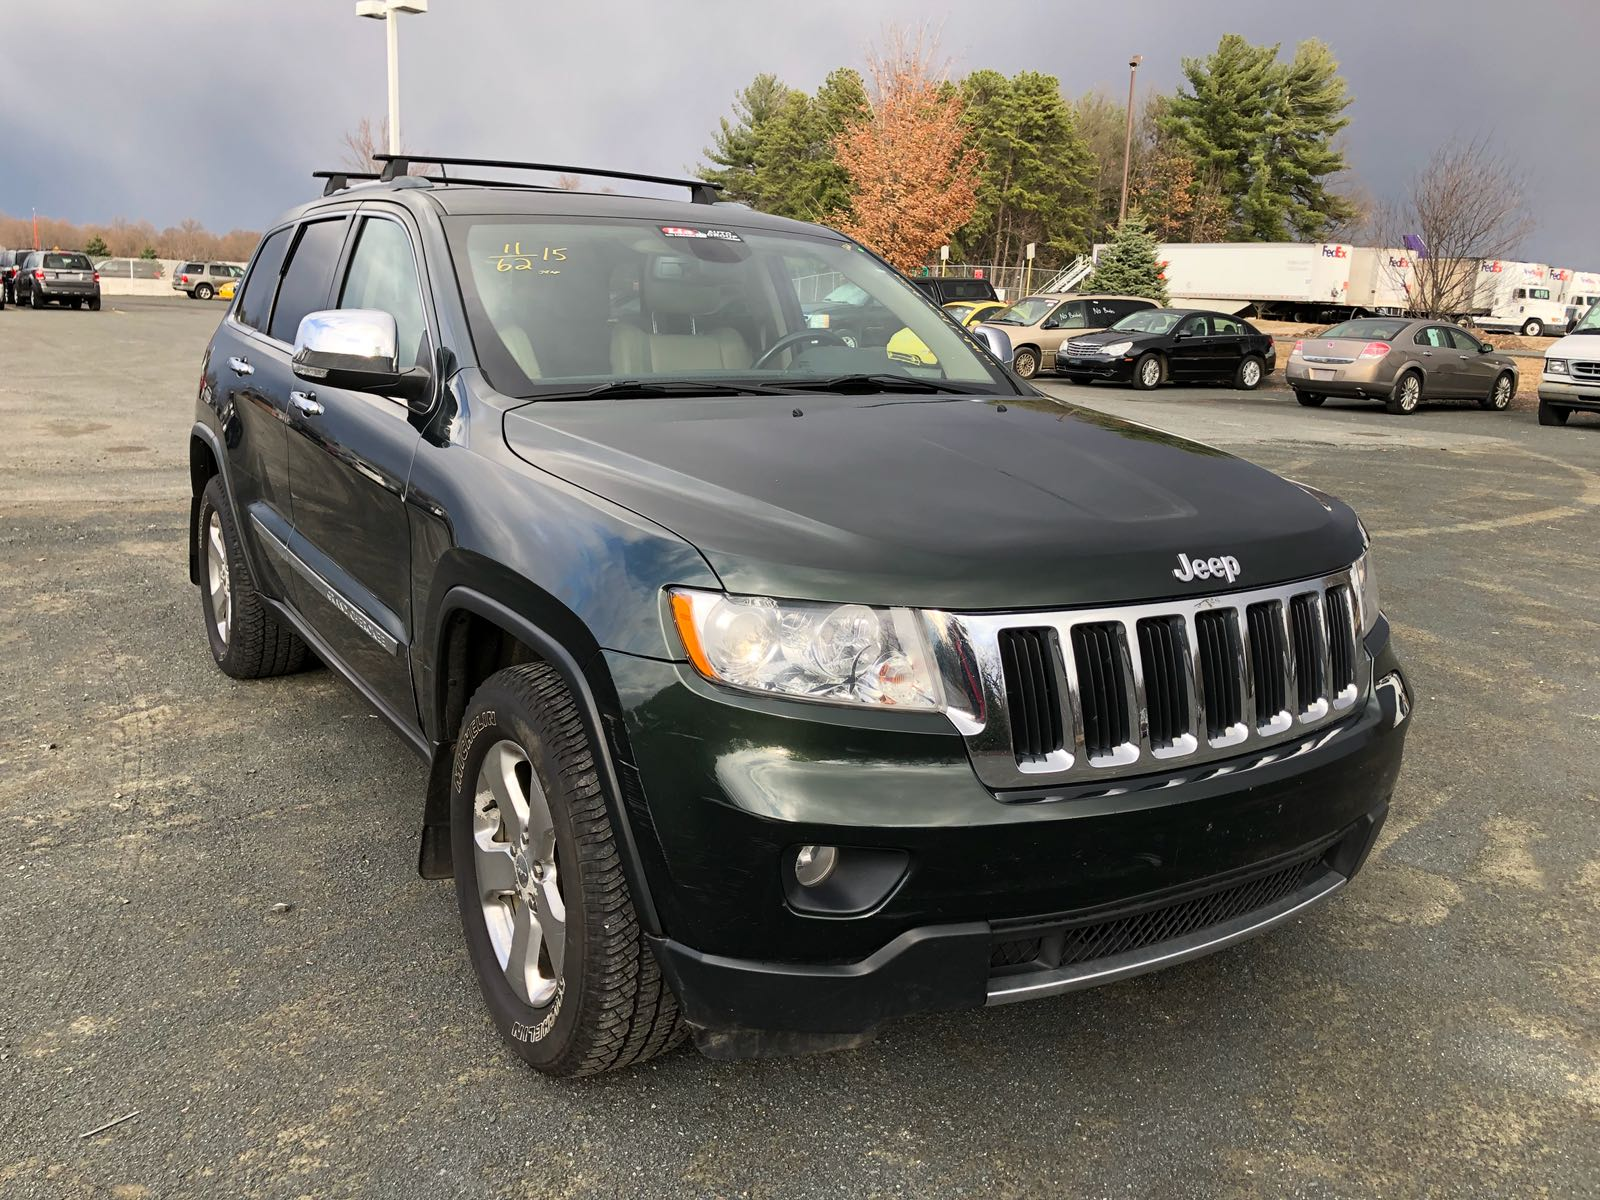 Auto Auction Ended on VIN 1C4PJLAB7GW 2016 JEEP CHEROKEE S in